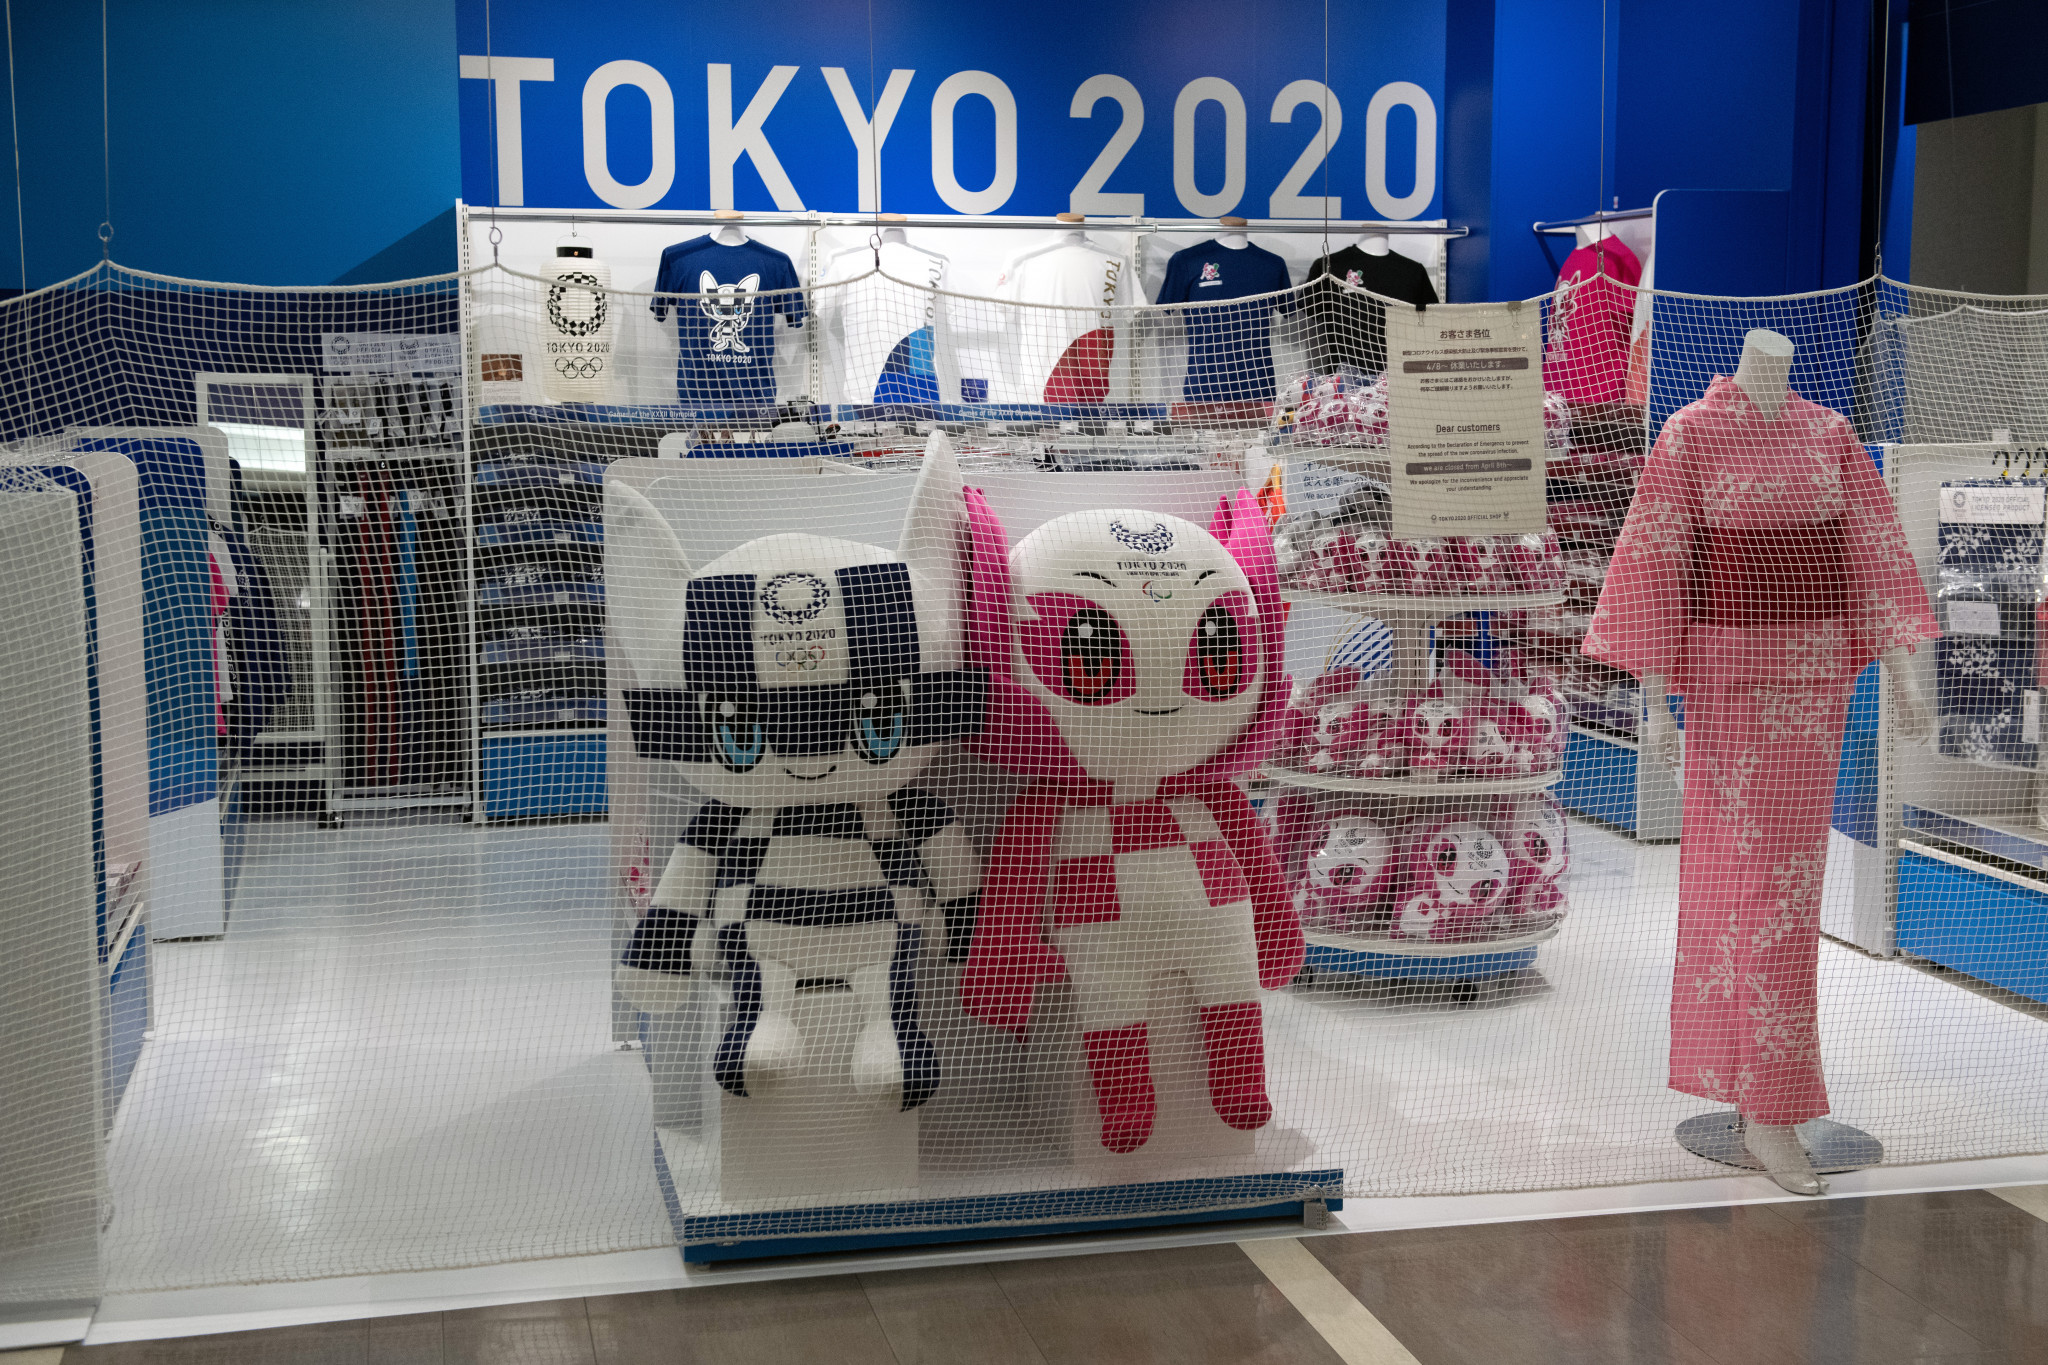 Five shops in Japan selling licensed Tokyo 2020 Olympic and Paralympic products are set to close following the postponement of the Games ©Getty Images